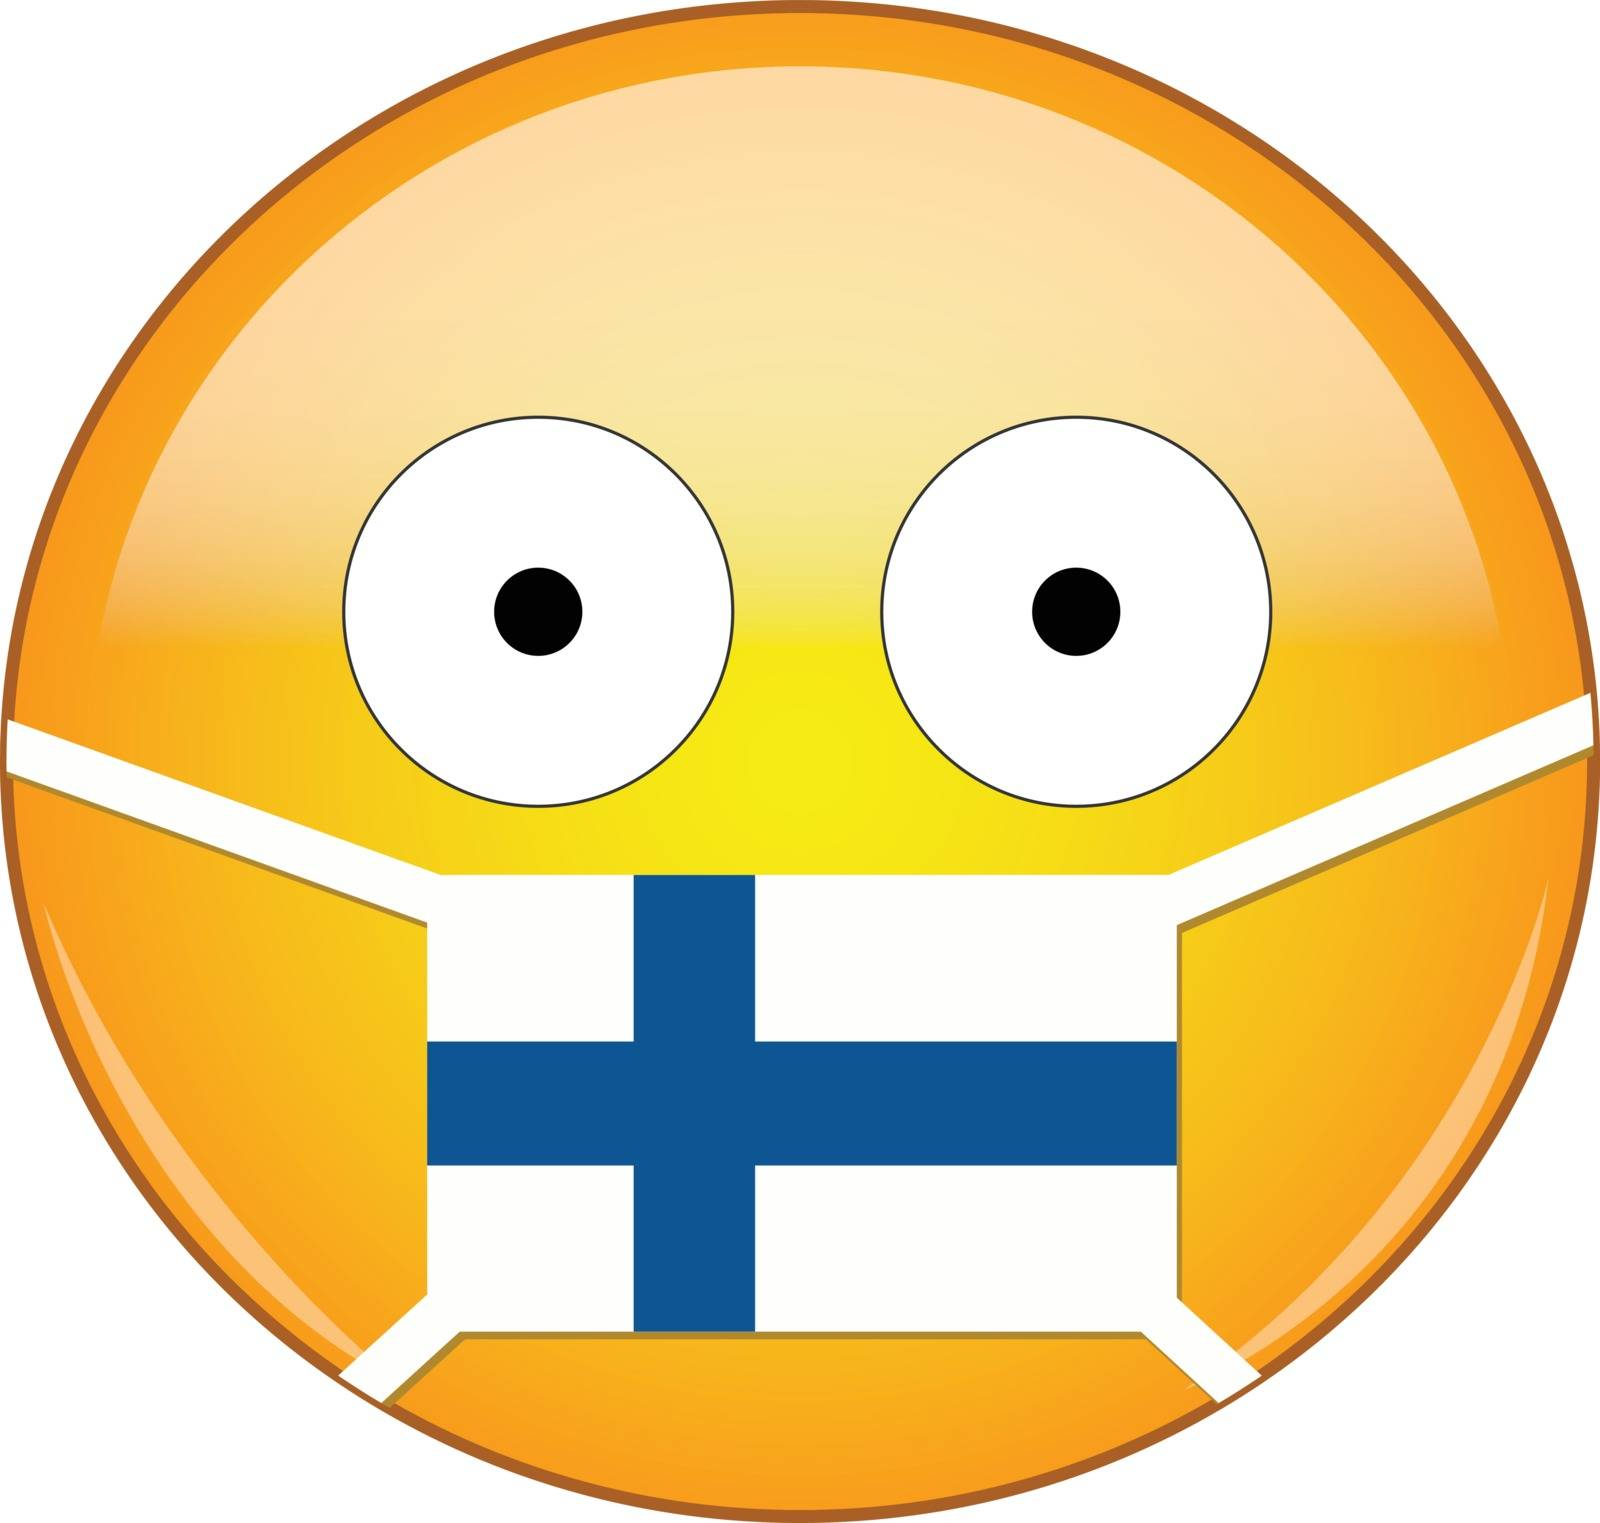 Finnish emoji in a medical mask protecting from SARS, coronavirus, bird flu and other viruses, germs and bacteria and contagious disease as well as toxic smog and air pollution.